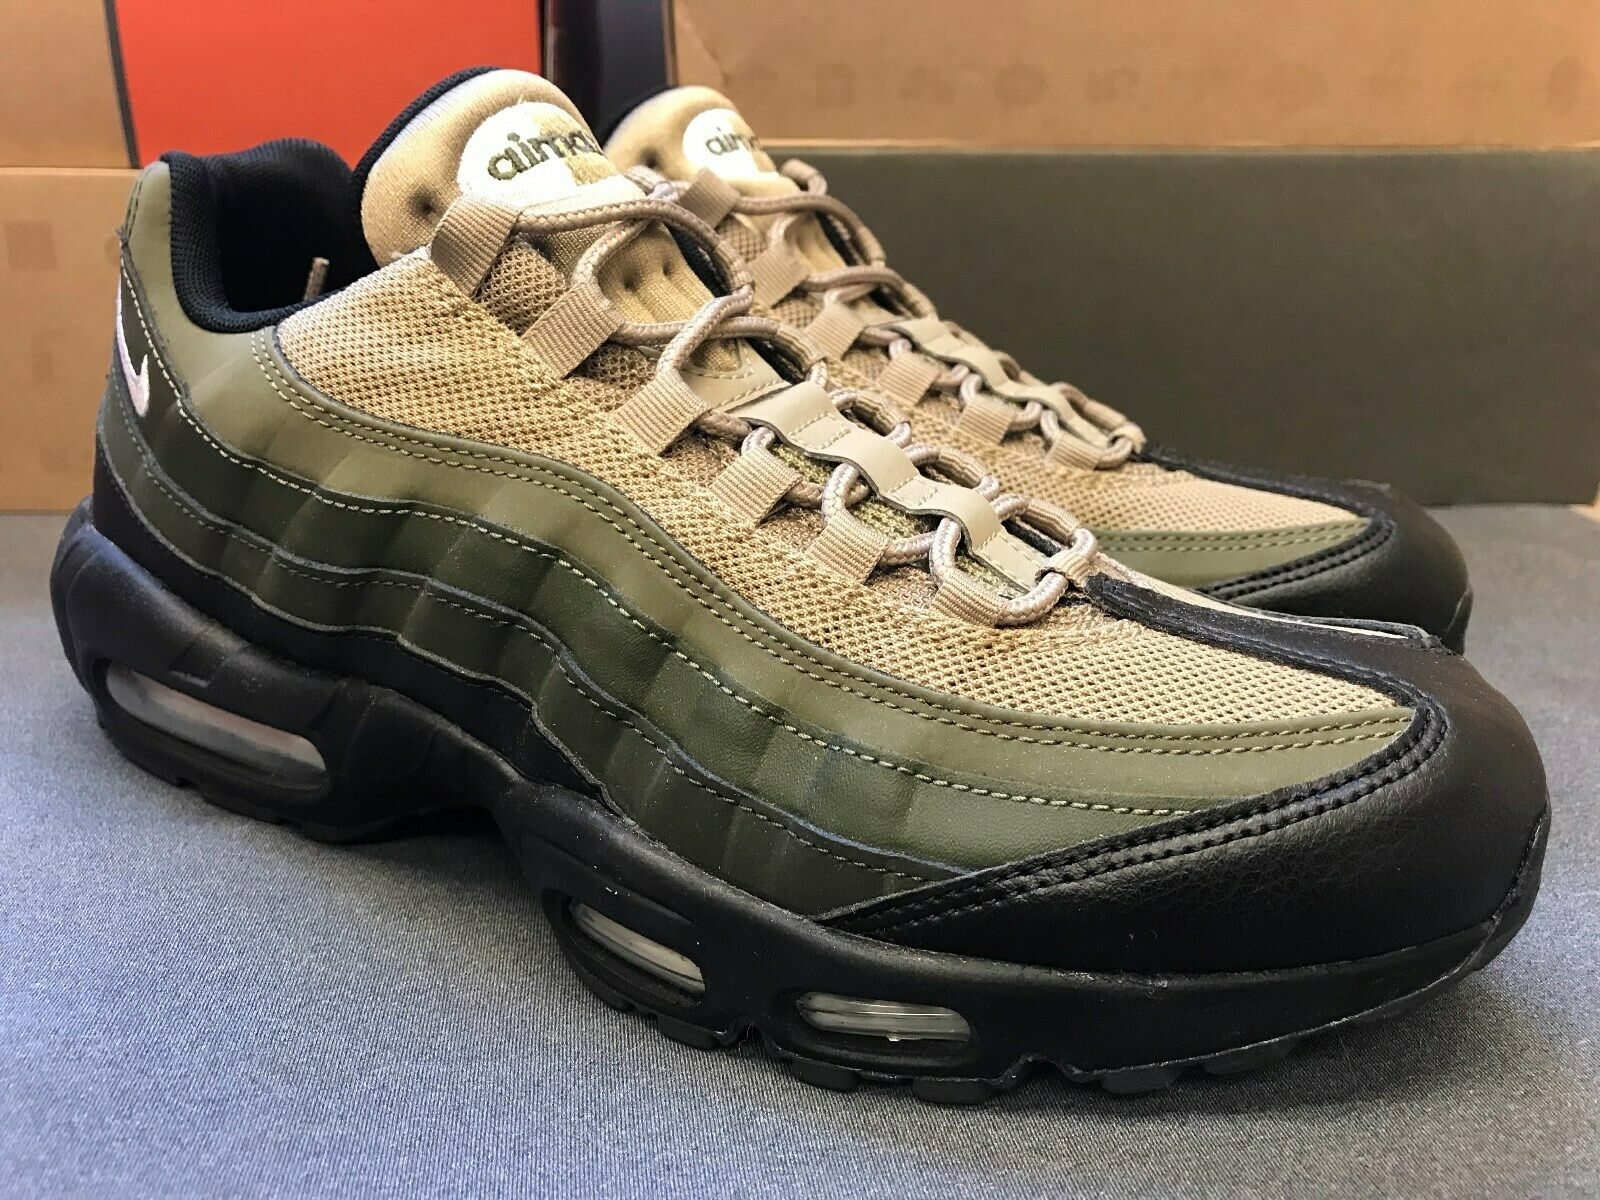 huge discount ac8e5 eba85 Sizw NIKE AIR MAX 95 ESSENTIAL 'Cargo Khaki' 749766-024 10  nvyofb3124-Athletic Shoes